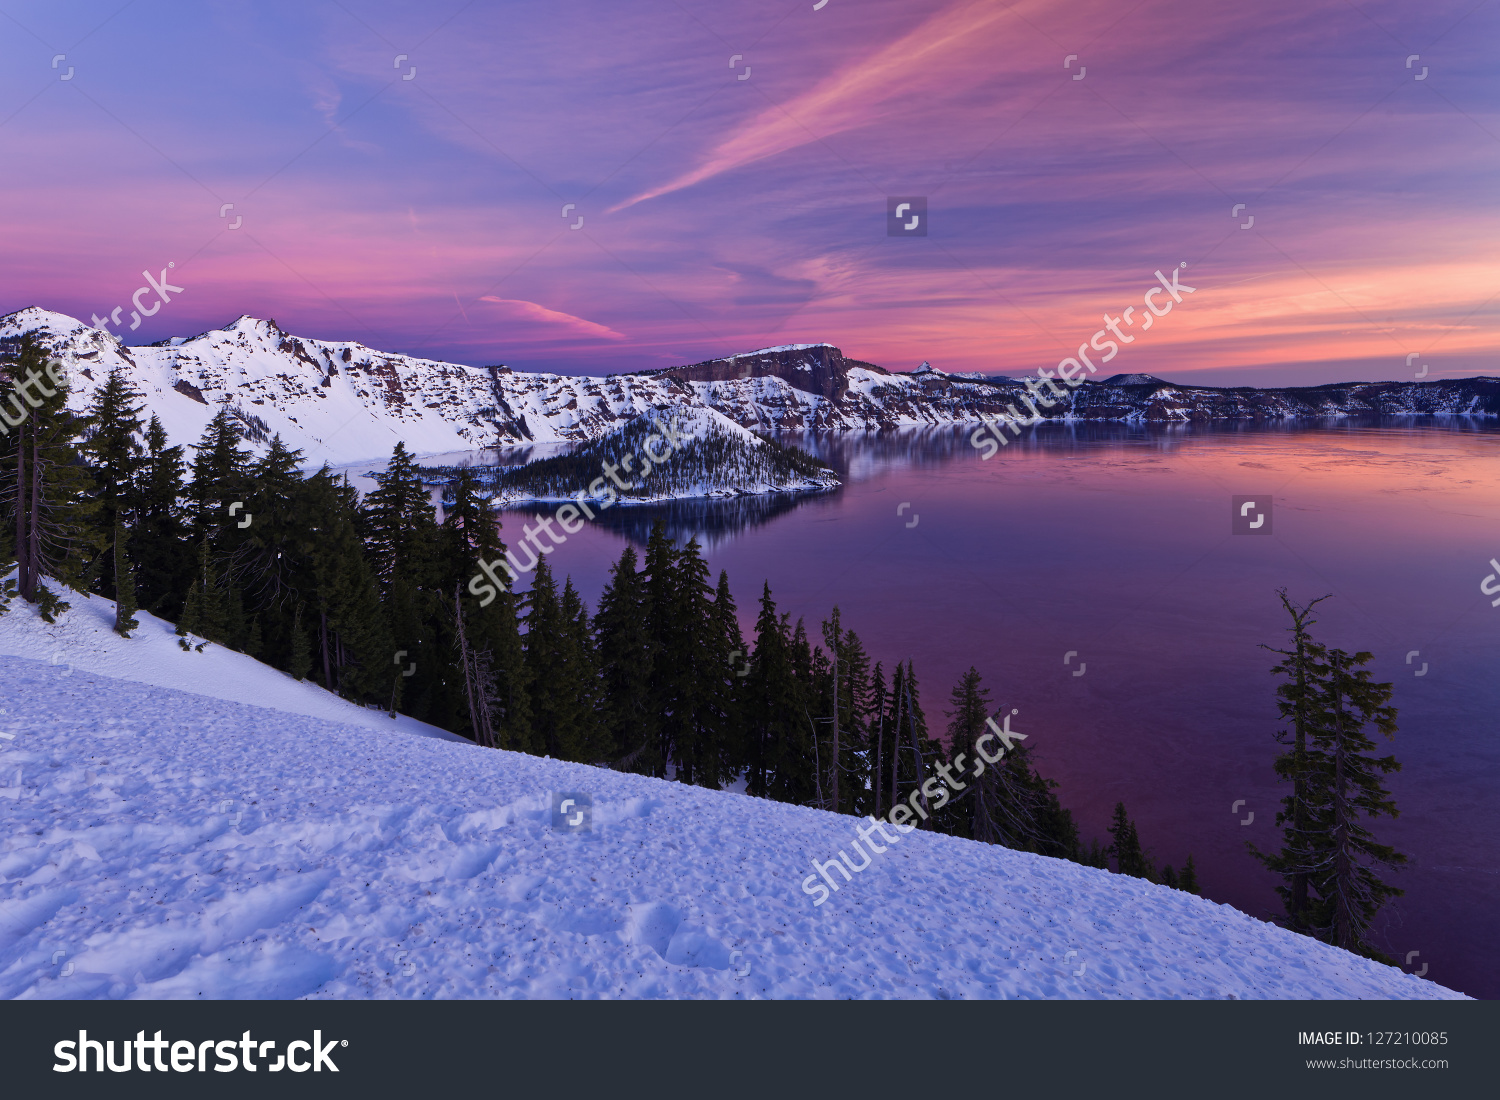 Winter Scene Crater Lake National Park Stock Photo 127210085.